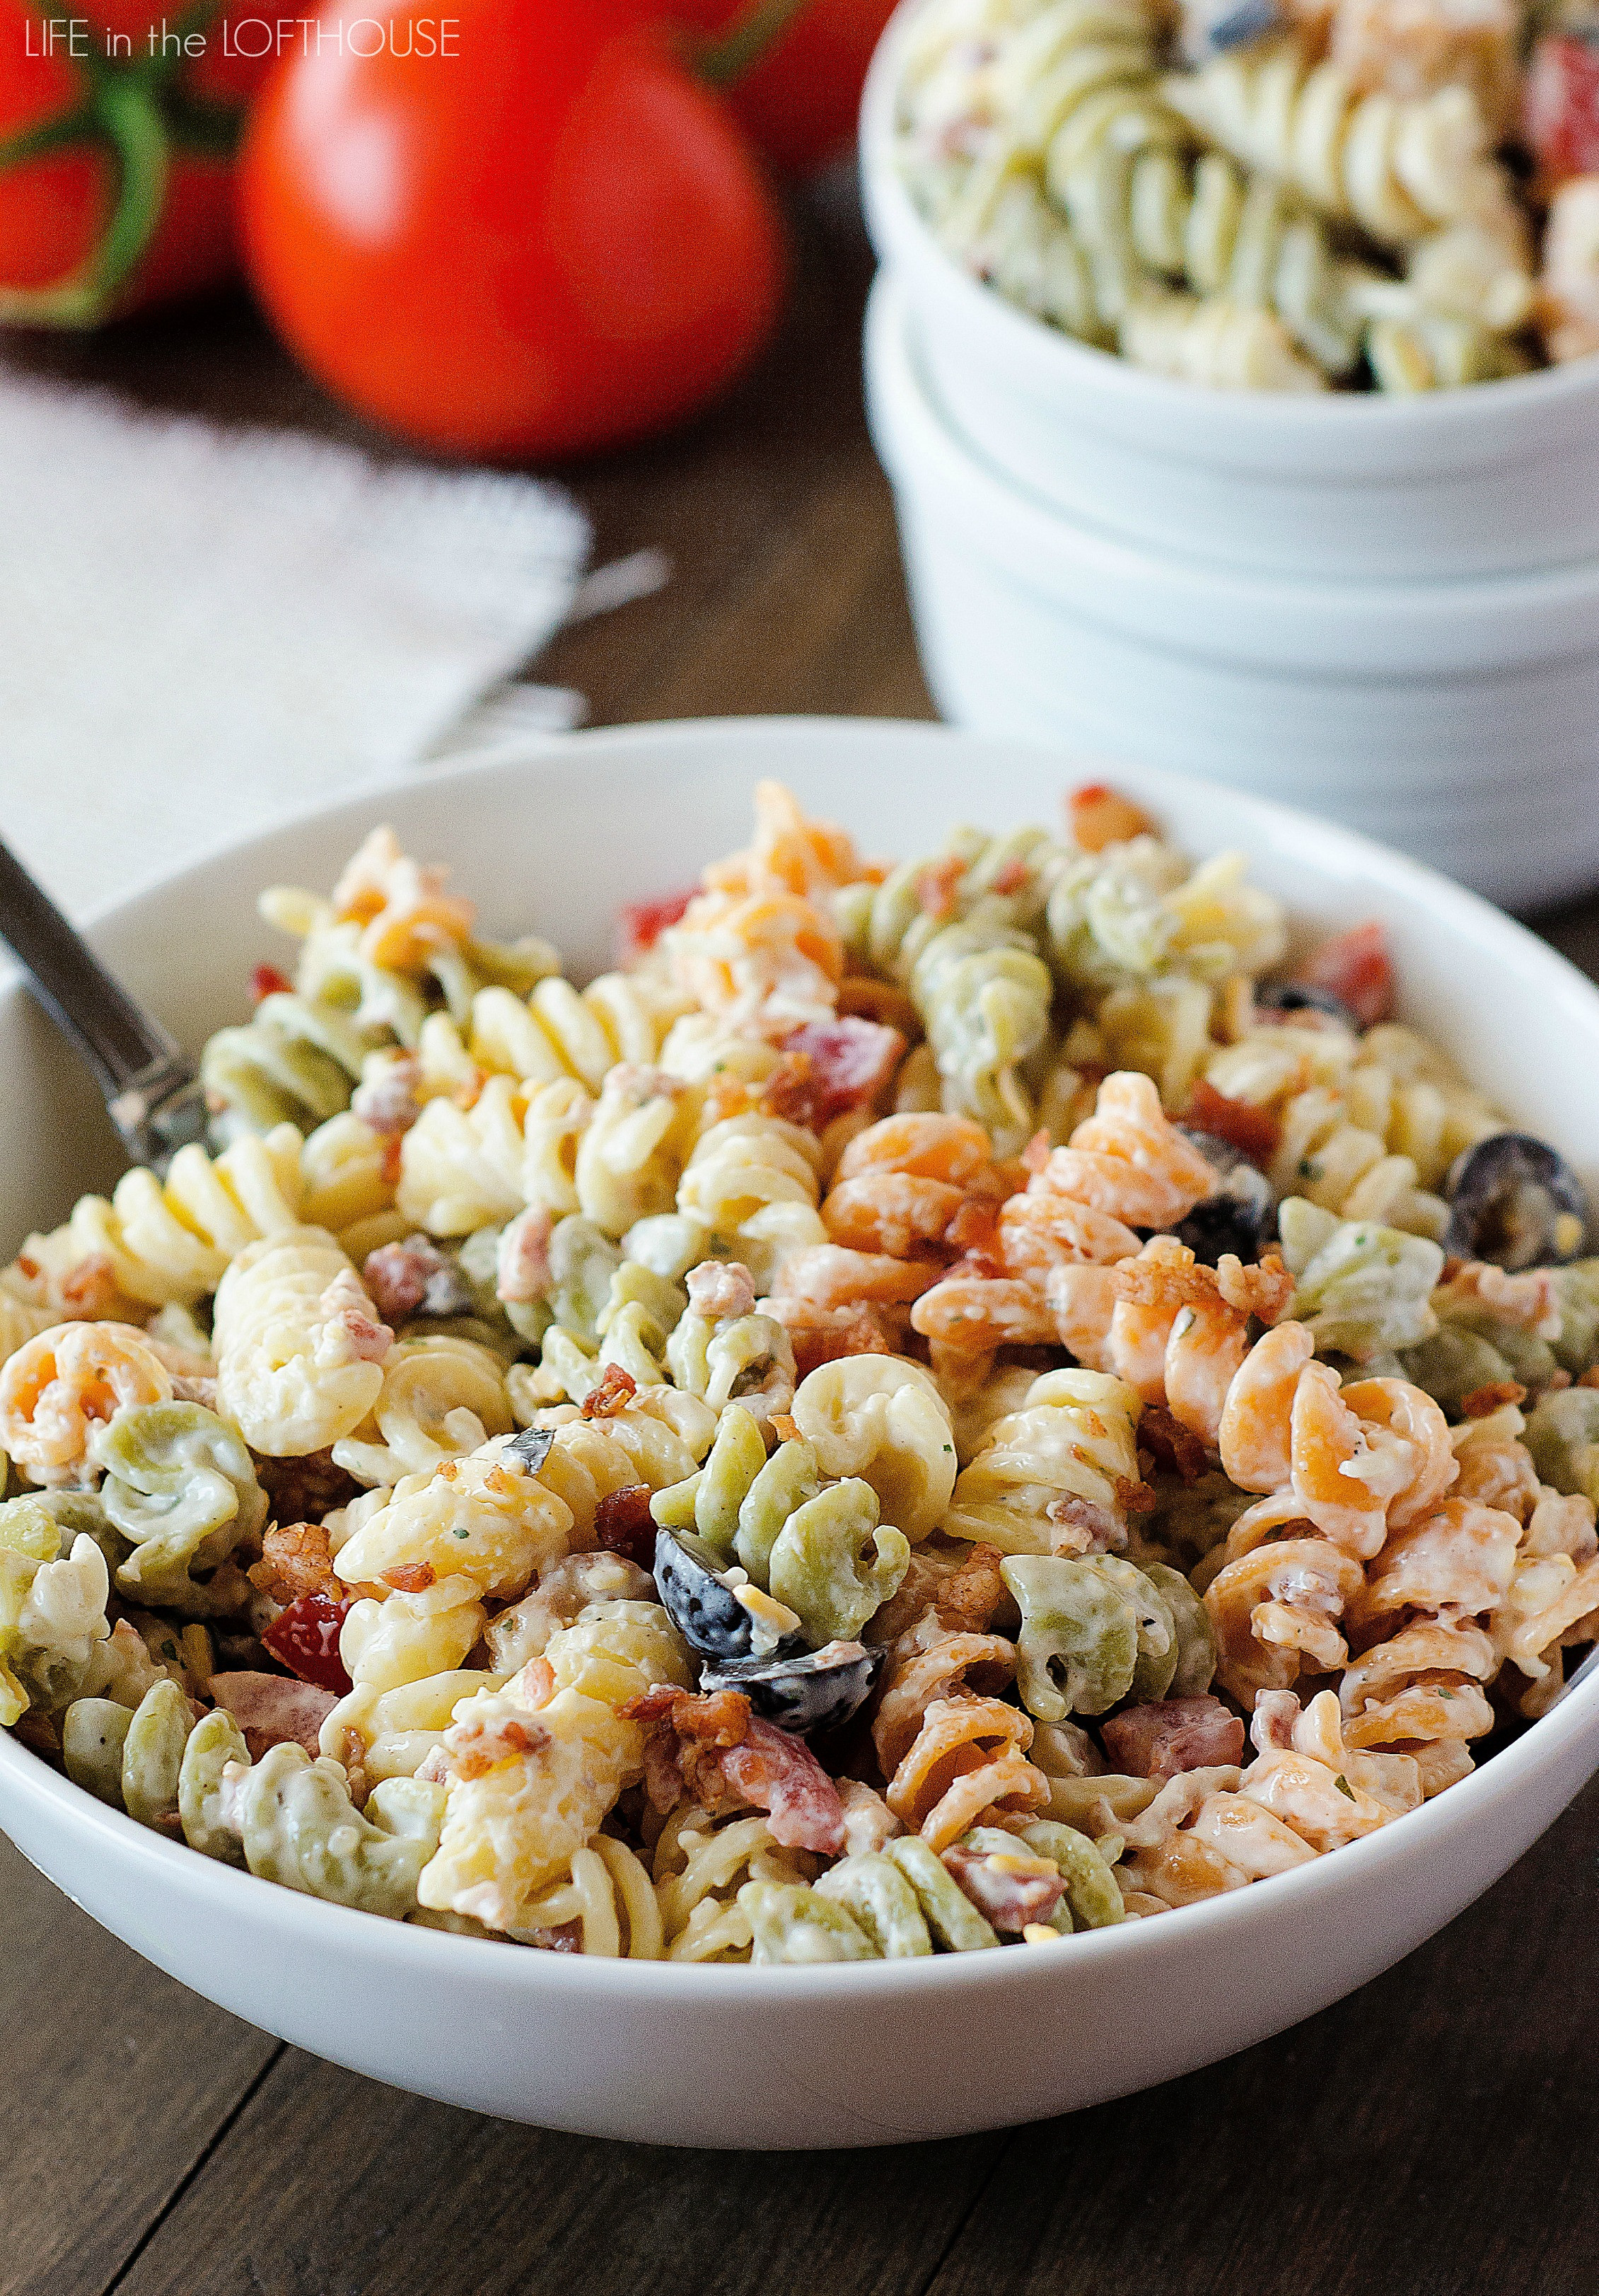 Bacon Ranch Pasta Salad  Bacon Ranch Pasta Salad Life In The Lofthouse